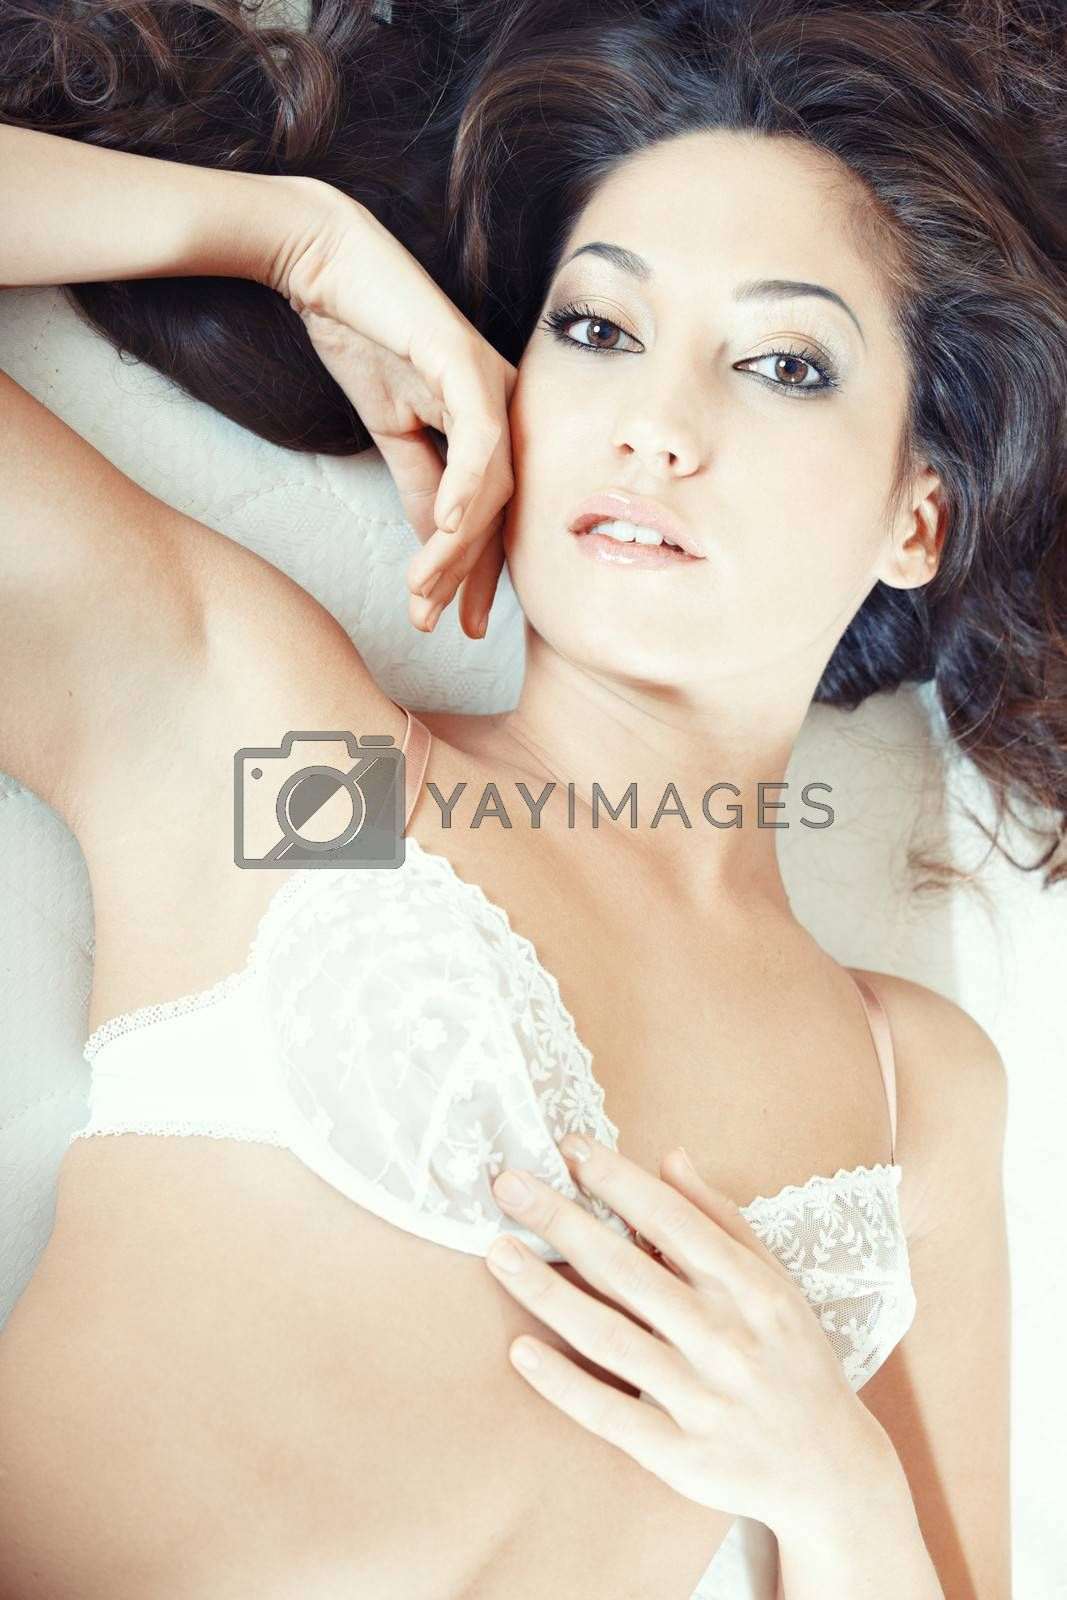 Attractive lady lying on the bed. Close-up portrait